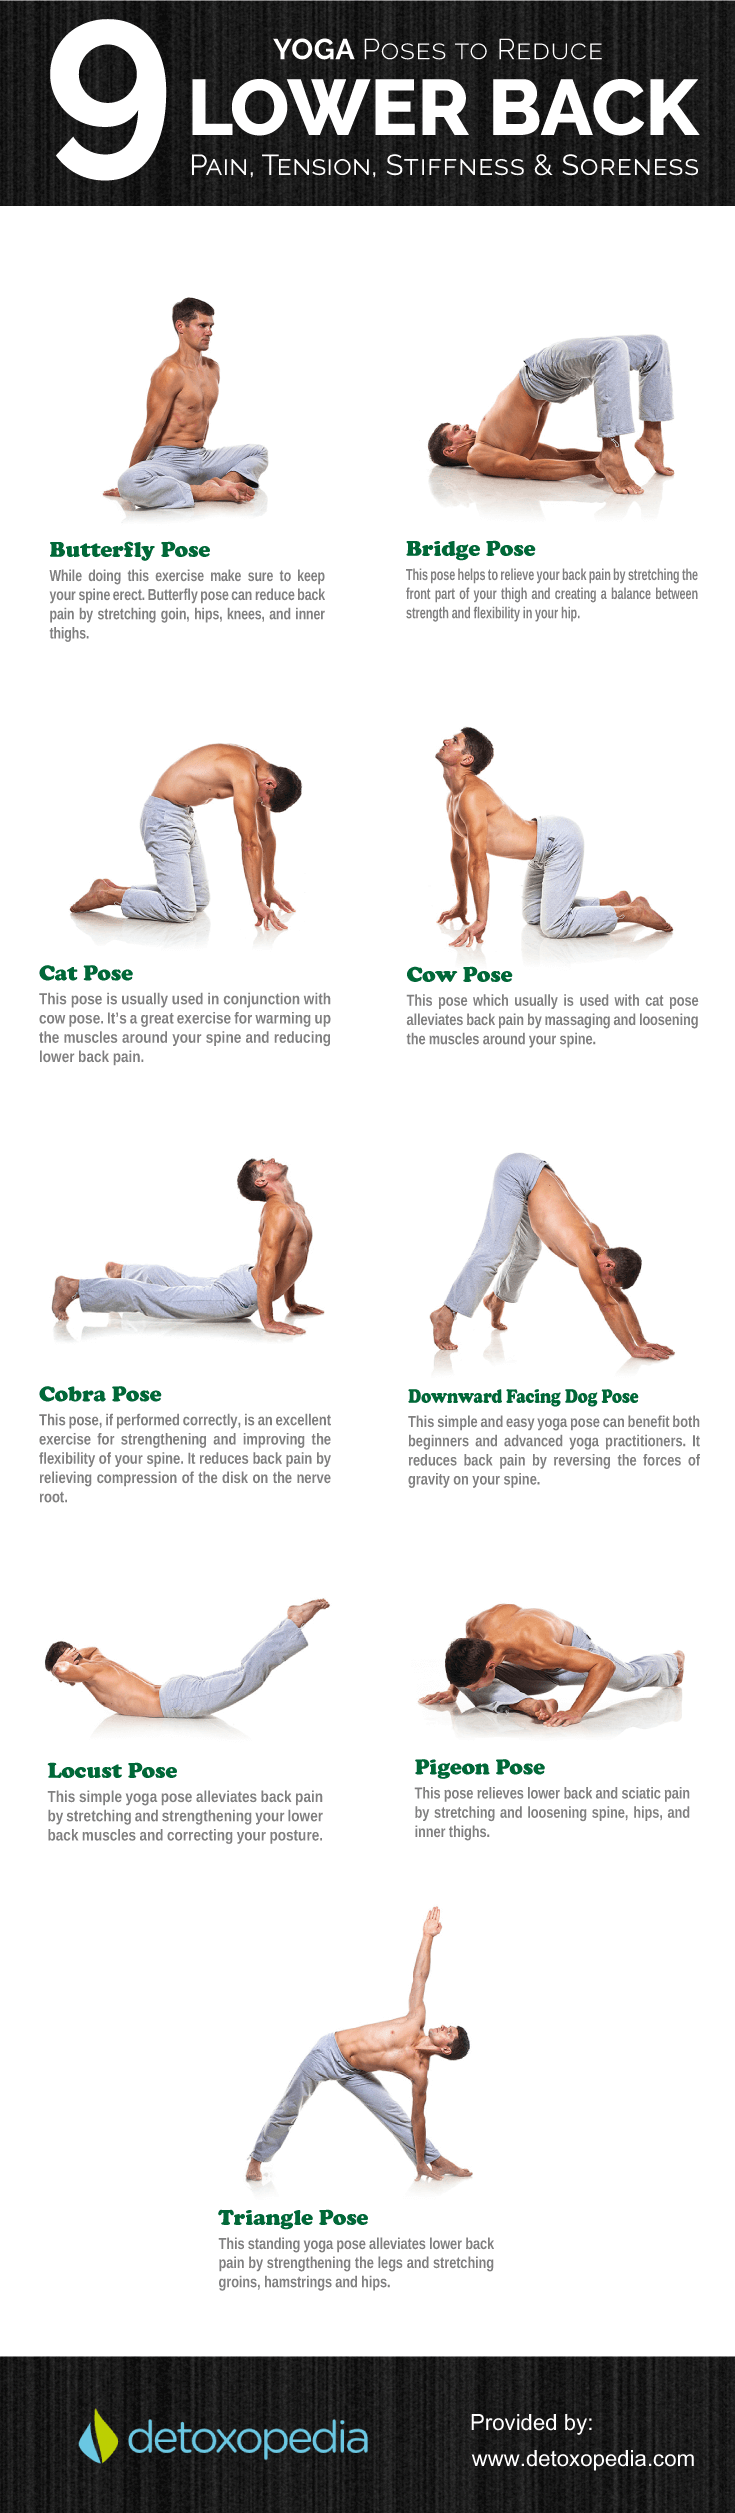 Yoga For Lower Back Pain And Weight Loss